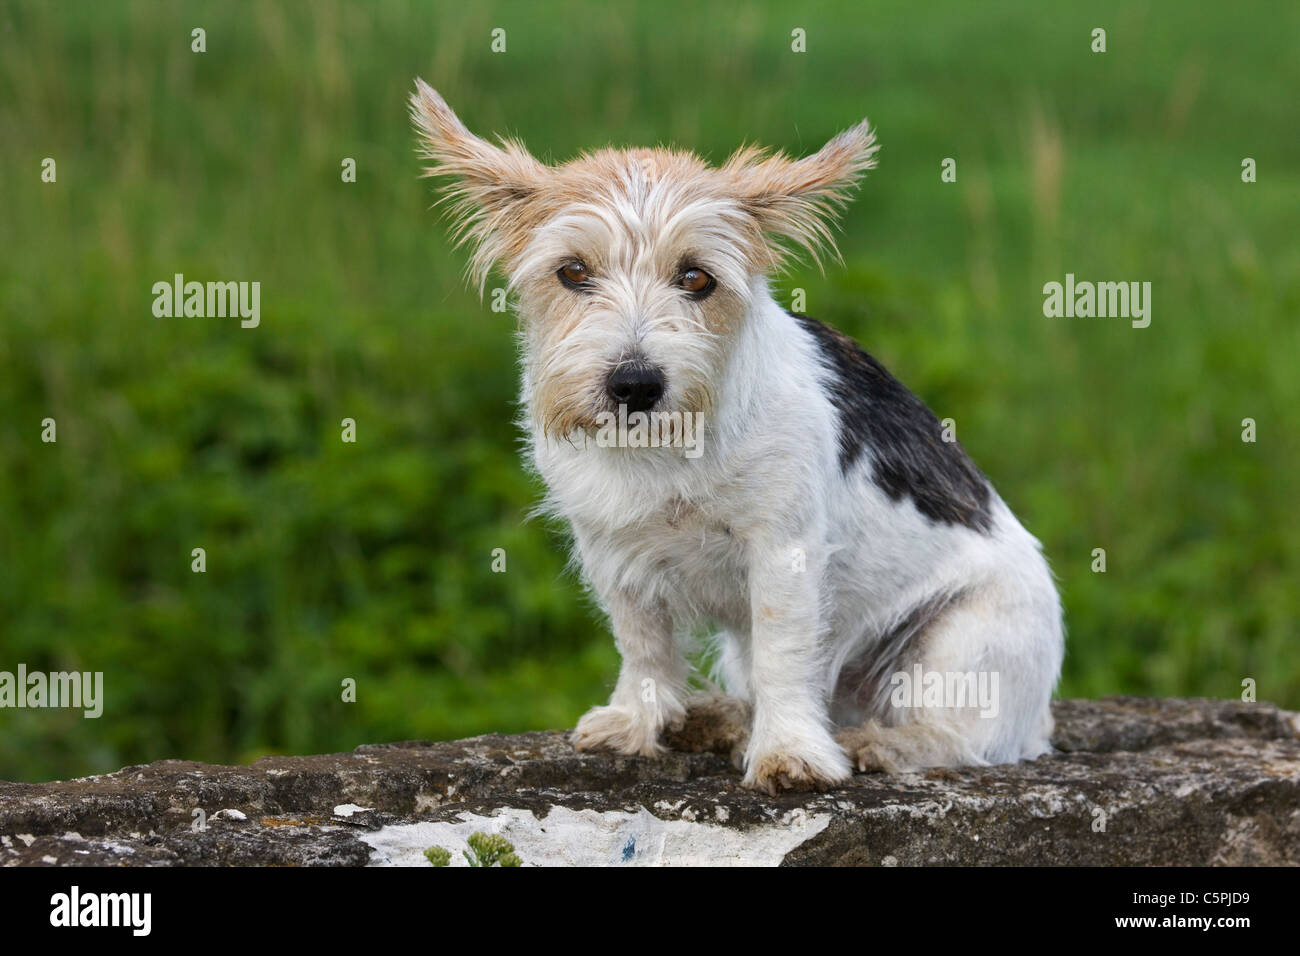 Rough-coated Jack Russell Terrier (Canis lupus familiaris) in garden Photo Stock